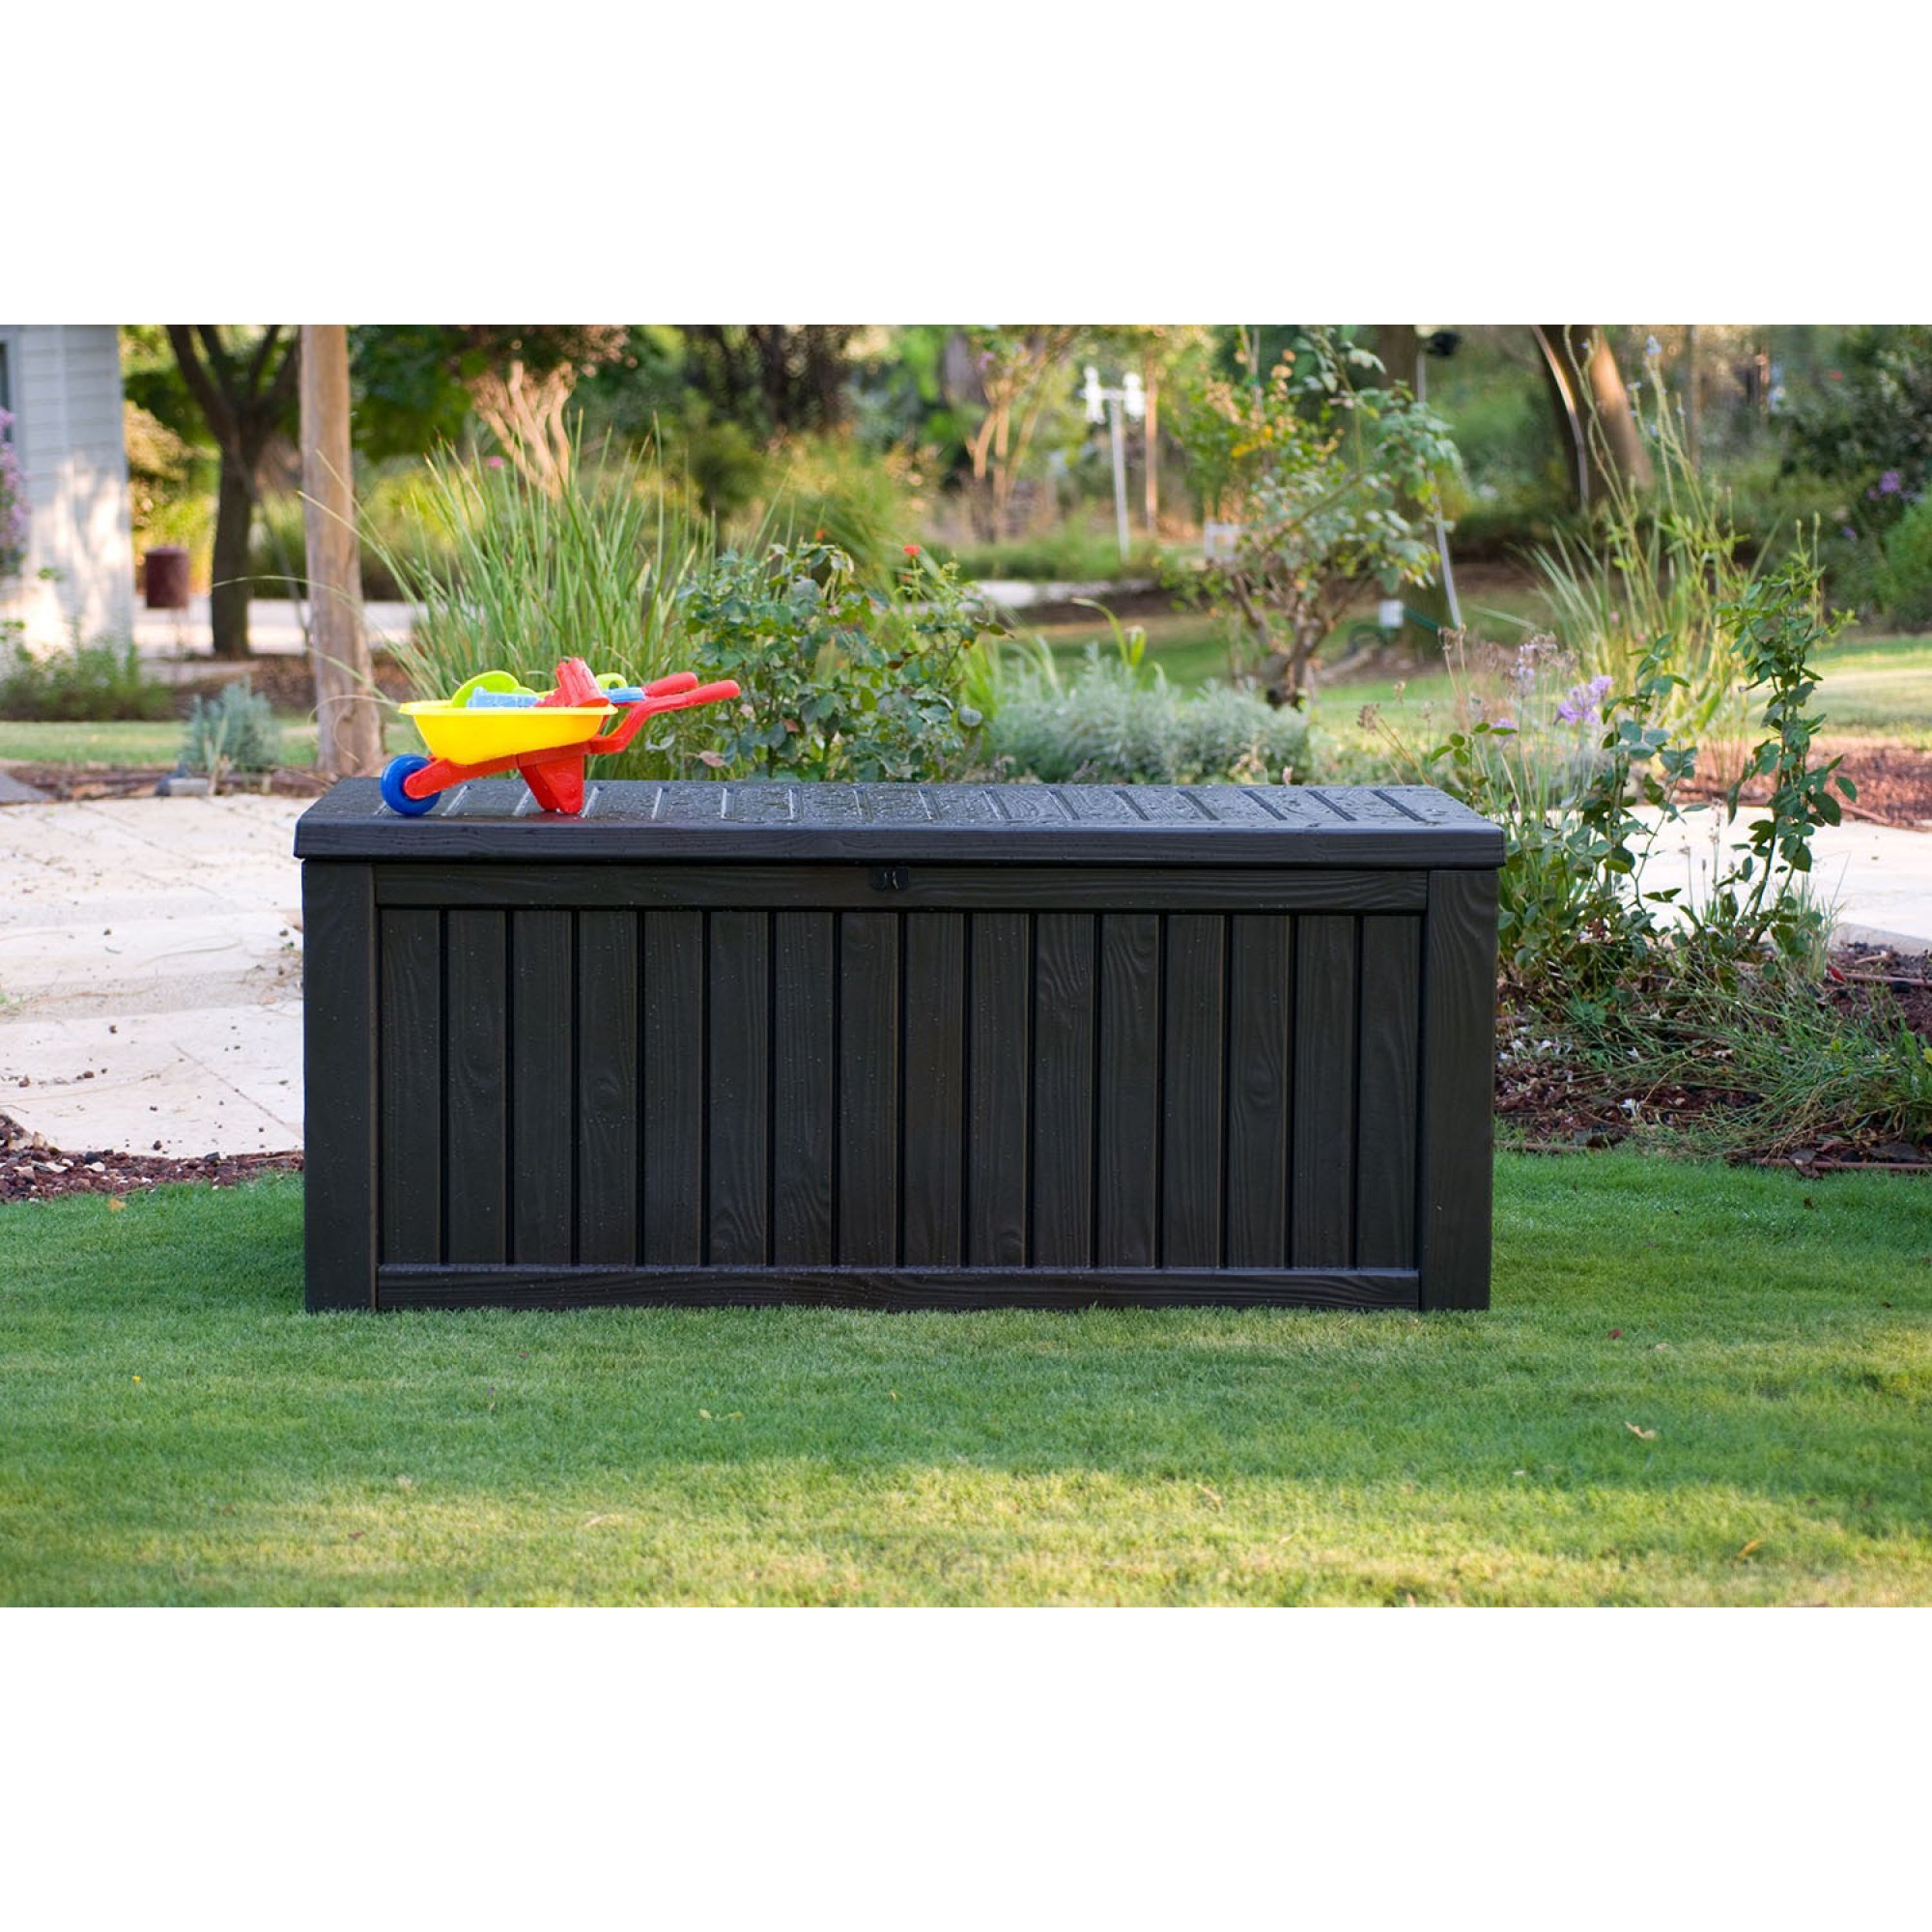 Brown Outdoor Plastic Deck Box Elegant Wood Look Panel Lid Opens Easily All Weather Resin Storage 150 Gallon Capacity Extra Large Vented for Air Circulation Patio Garden Home Outdoor Living Furniture